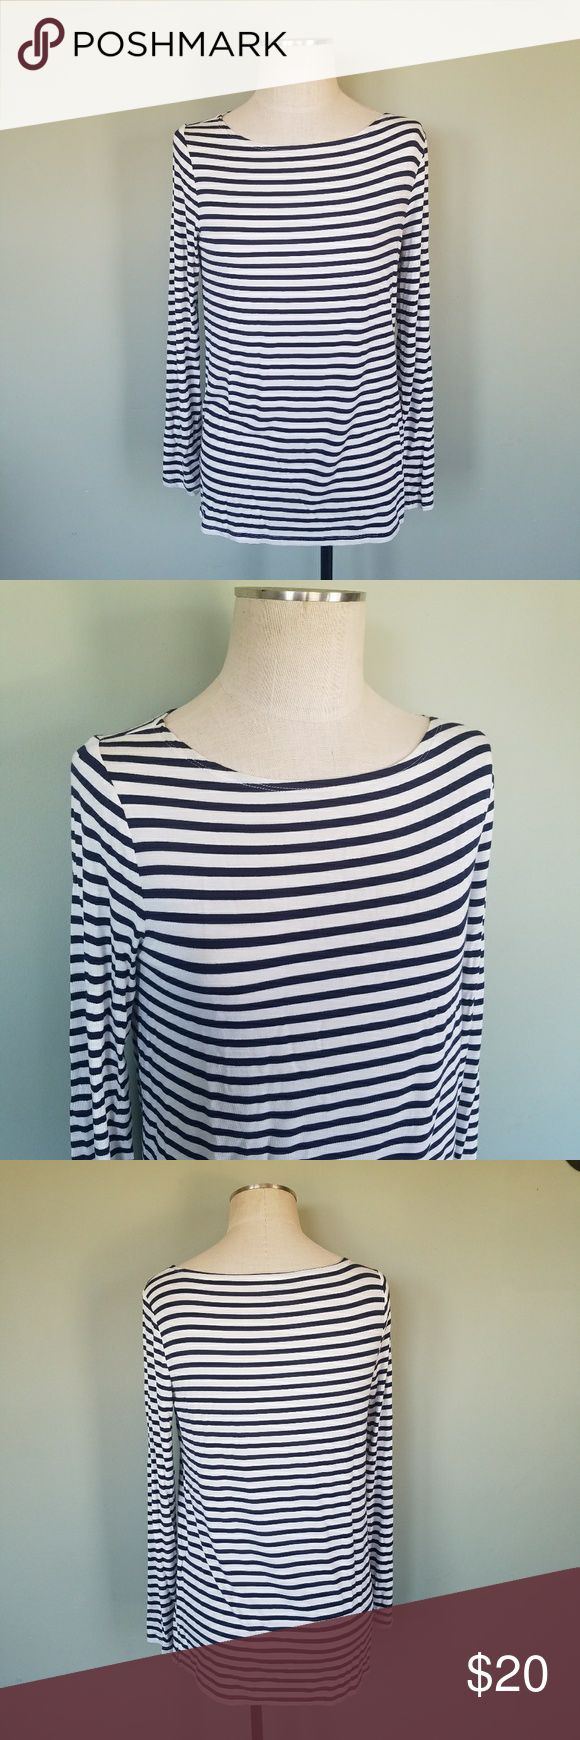 Gap Luxe Stripe Long Sleeve Shirt Navy GAP. Women's Medium. Relaxed fit. Luxe luxueux. Luxury line. Lightweight comfortable fabric. Color- Navy Blue / White  Long sleeve top. Nautical style stripes.  Excellent condition. *Red Hudson Jeans (size 25) also available in my closet. GAP Tops Blouses